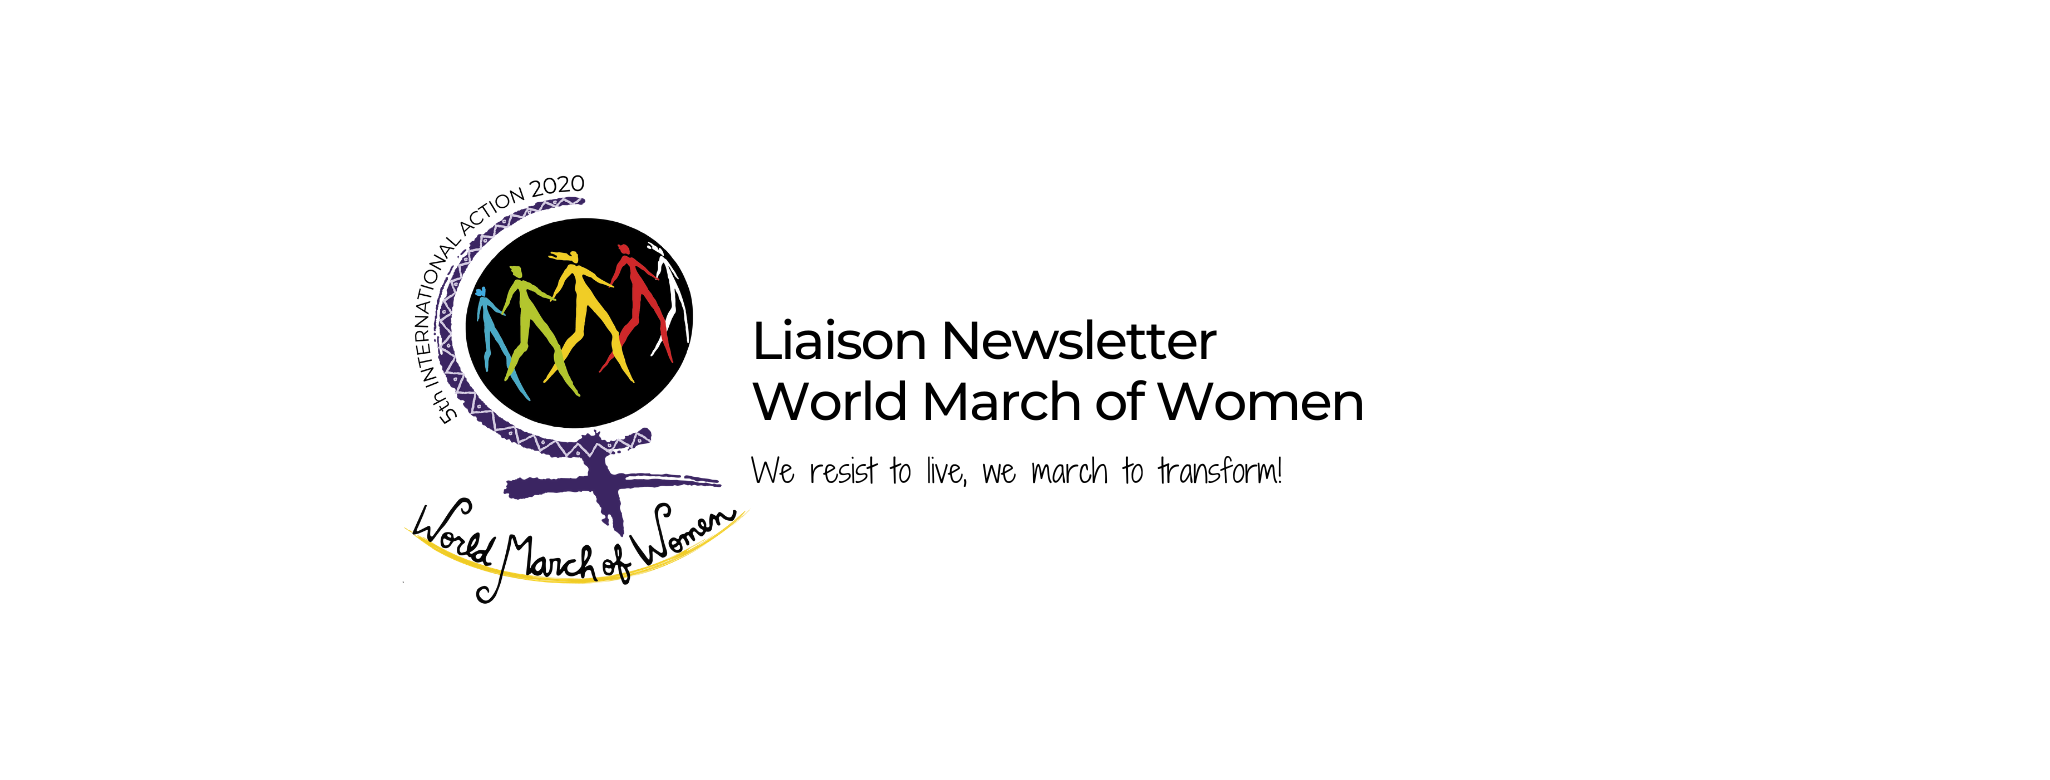 World March of Women closes 5th International Action connecting all regions of the world